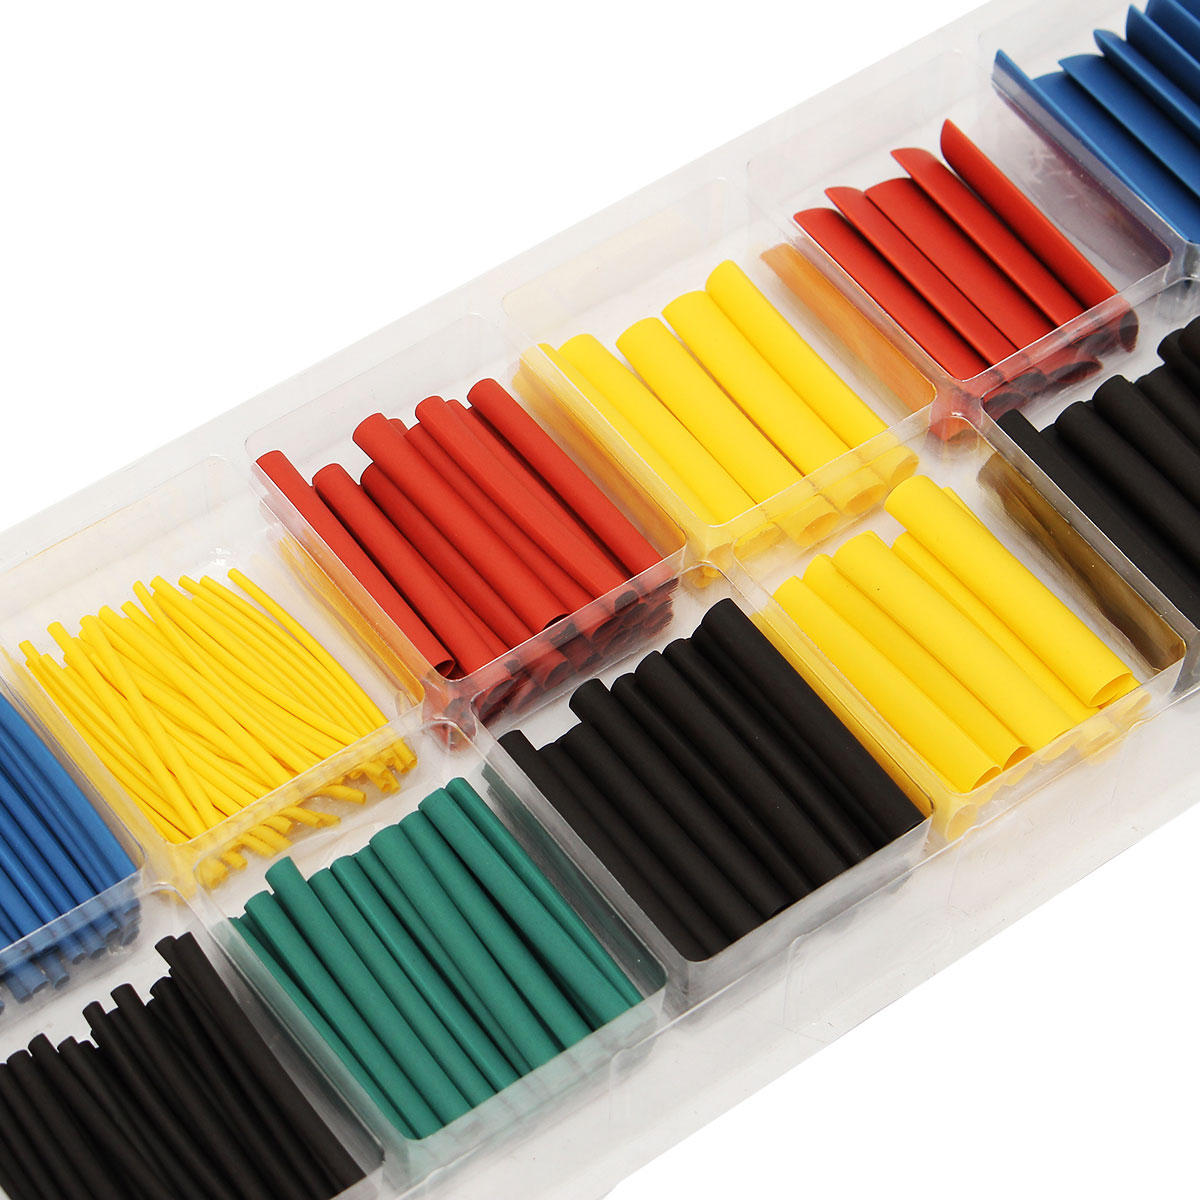 280pcs assortment ratio 2 1 heat shrink tubing tube. Black Bedroom Furniture Sets. Home Design Ideas